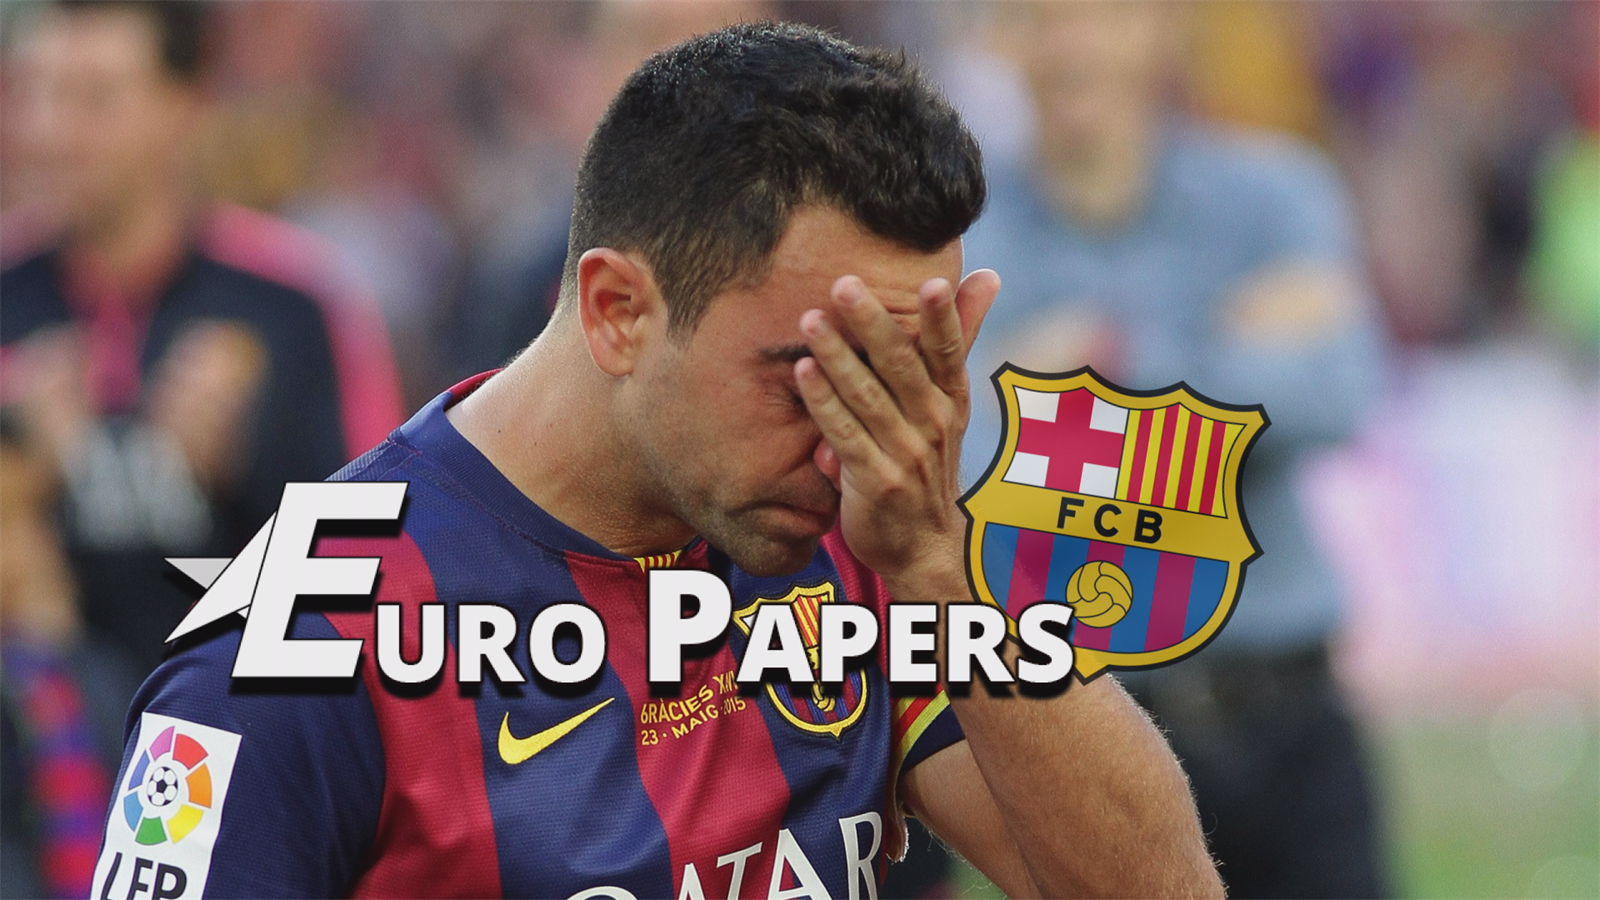 Barcelona legend Xavi under investigation for match-fixing - Euro Papers